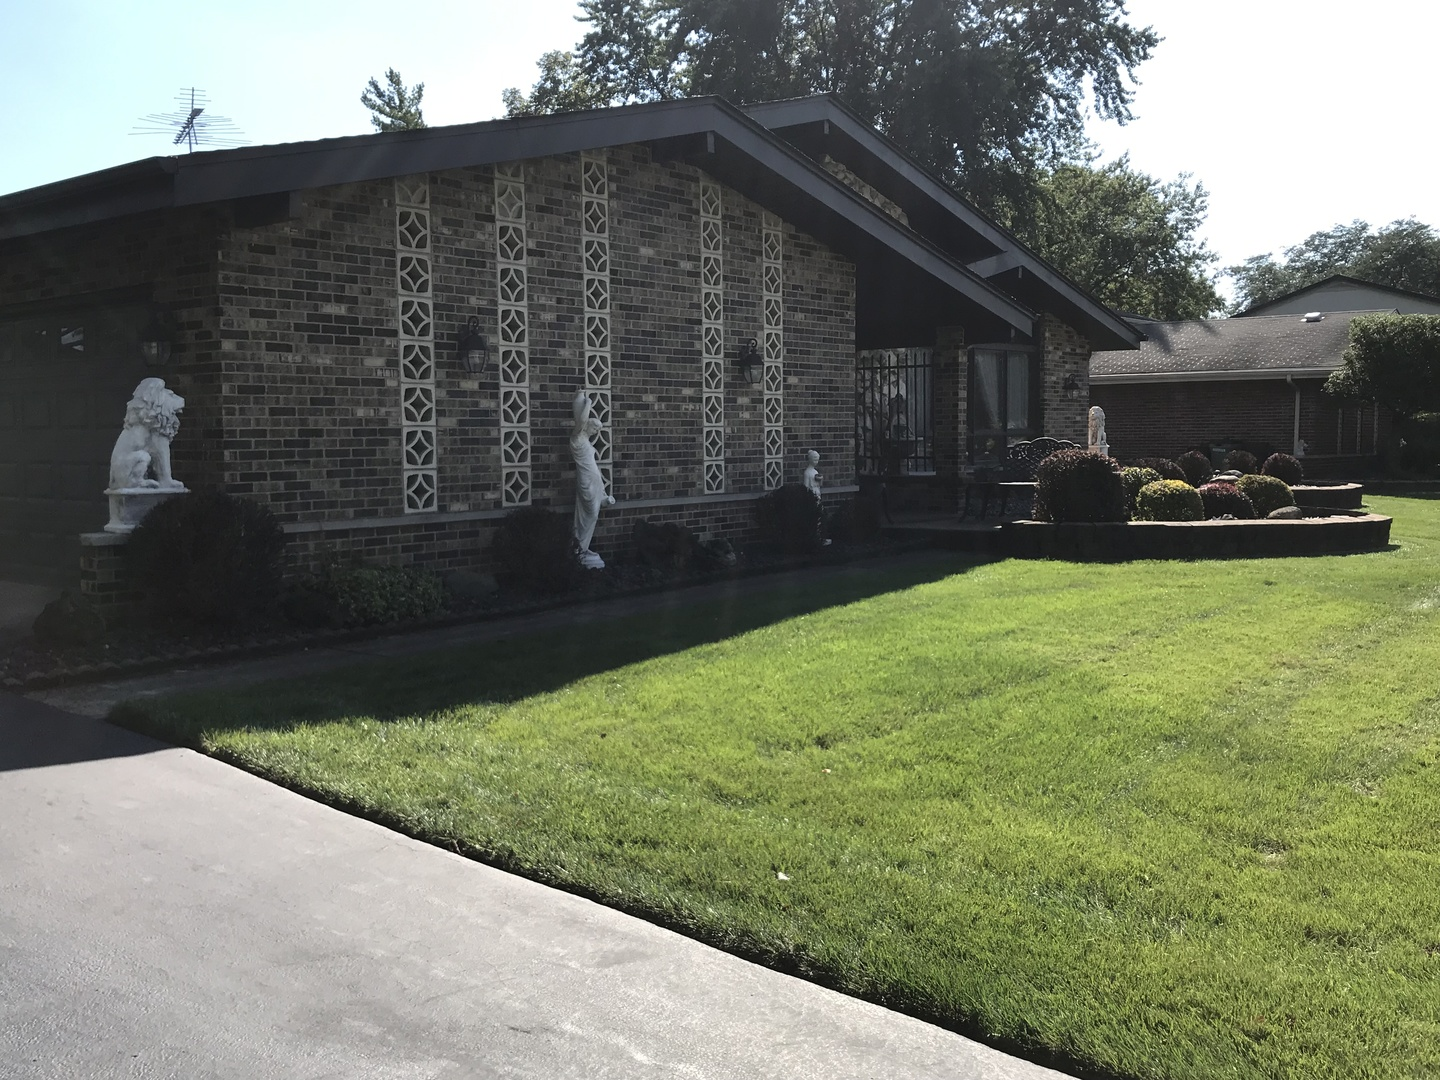 6215 West 124th, Palos Heights, Illinois, 60463